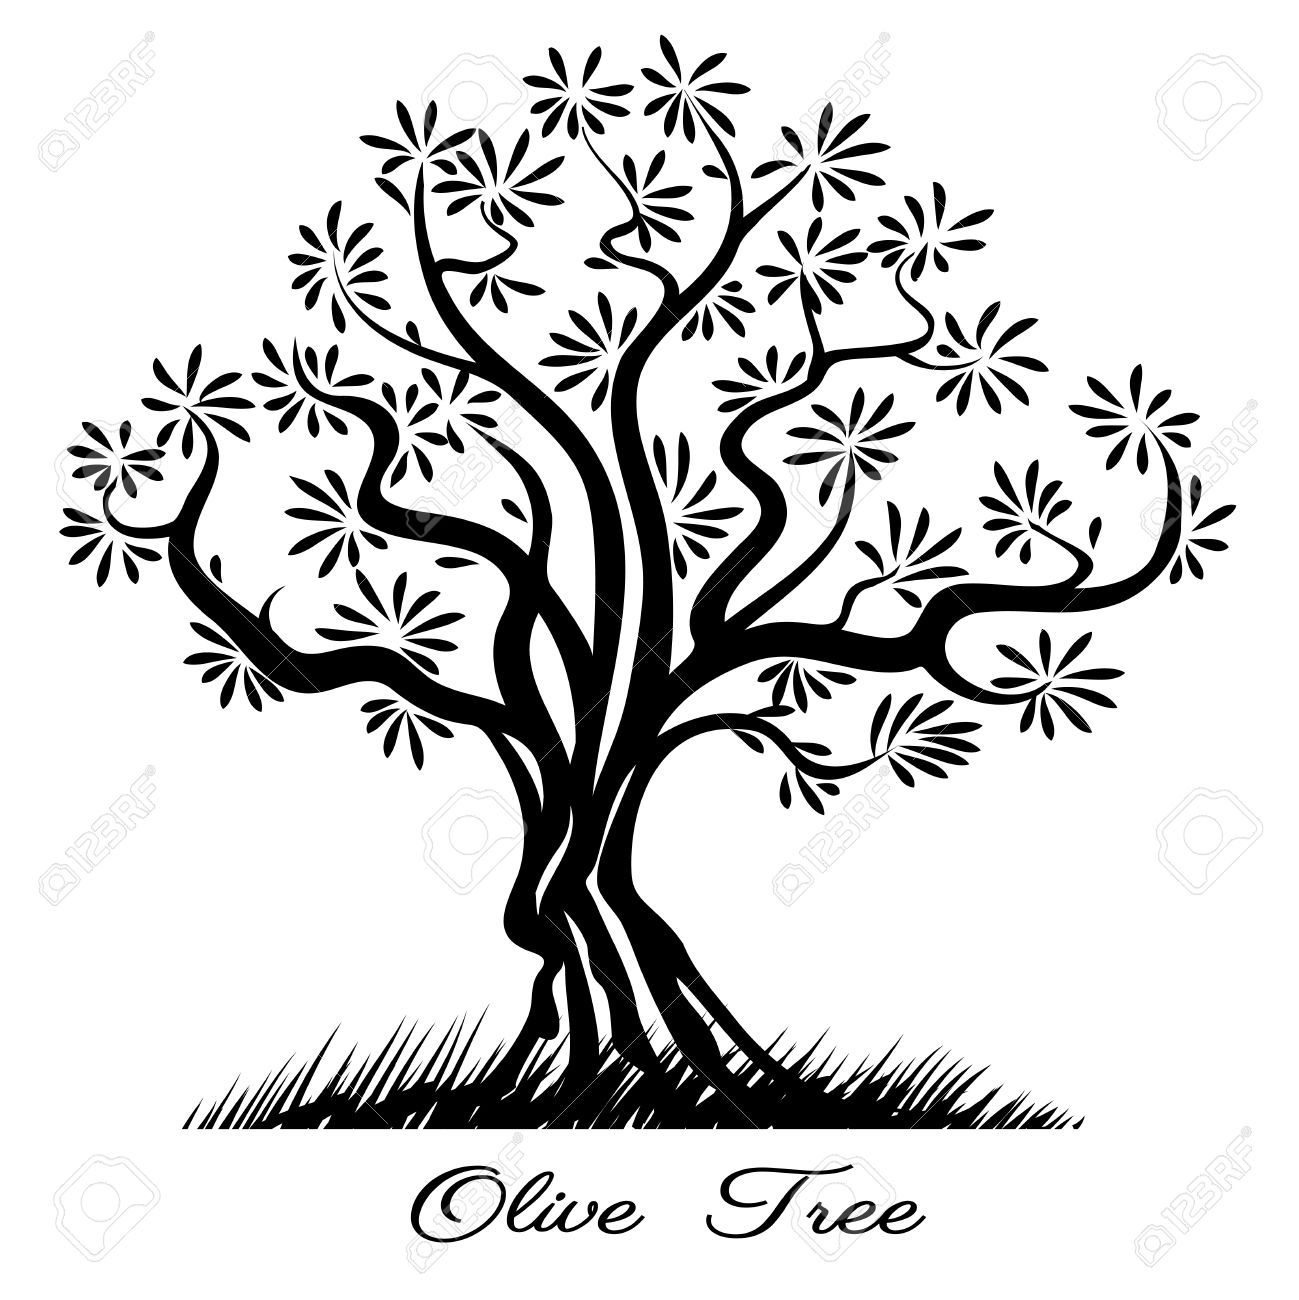 1299x1300 35034280 Olive Tree Silhouette Sketch Wood Painted Black Lines